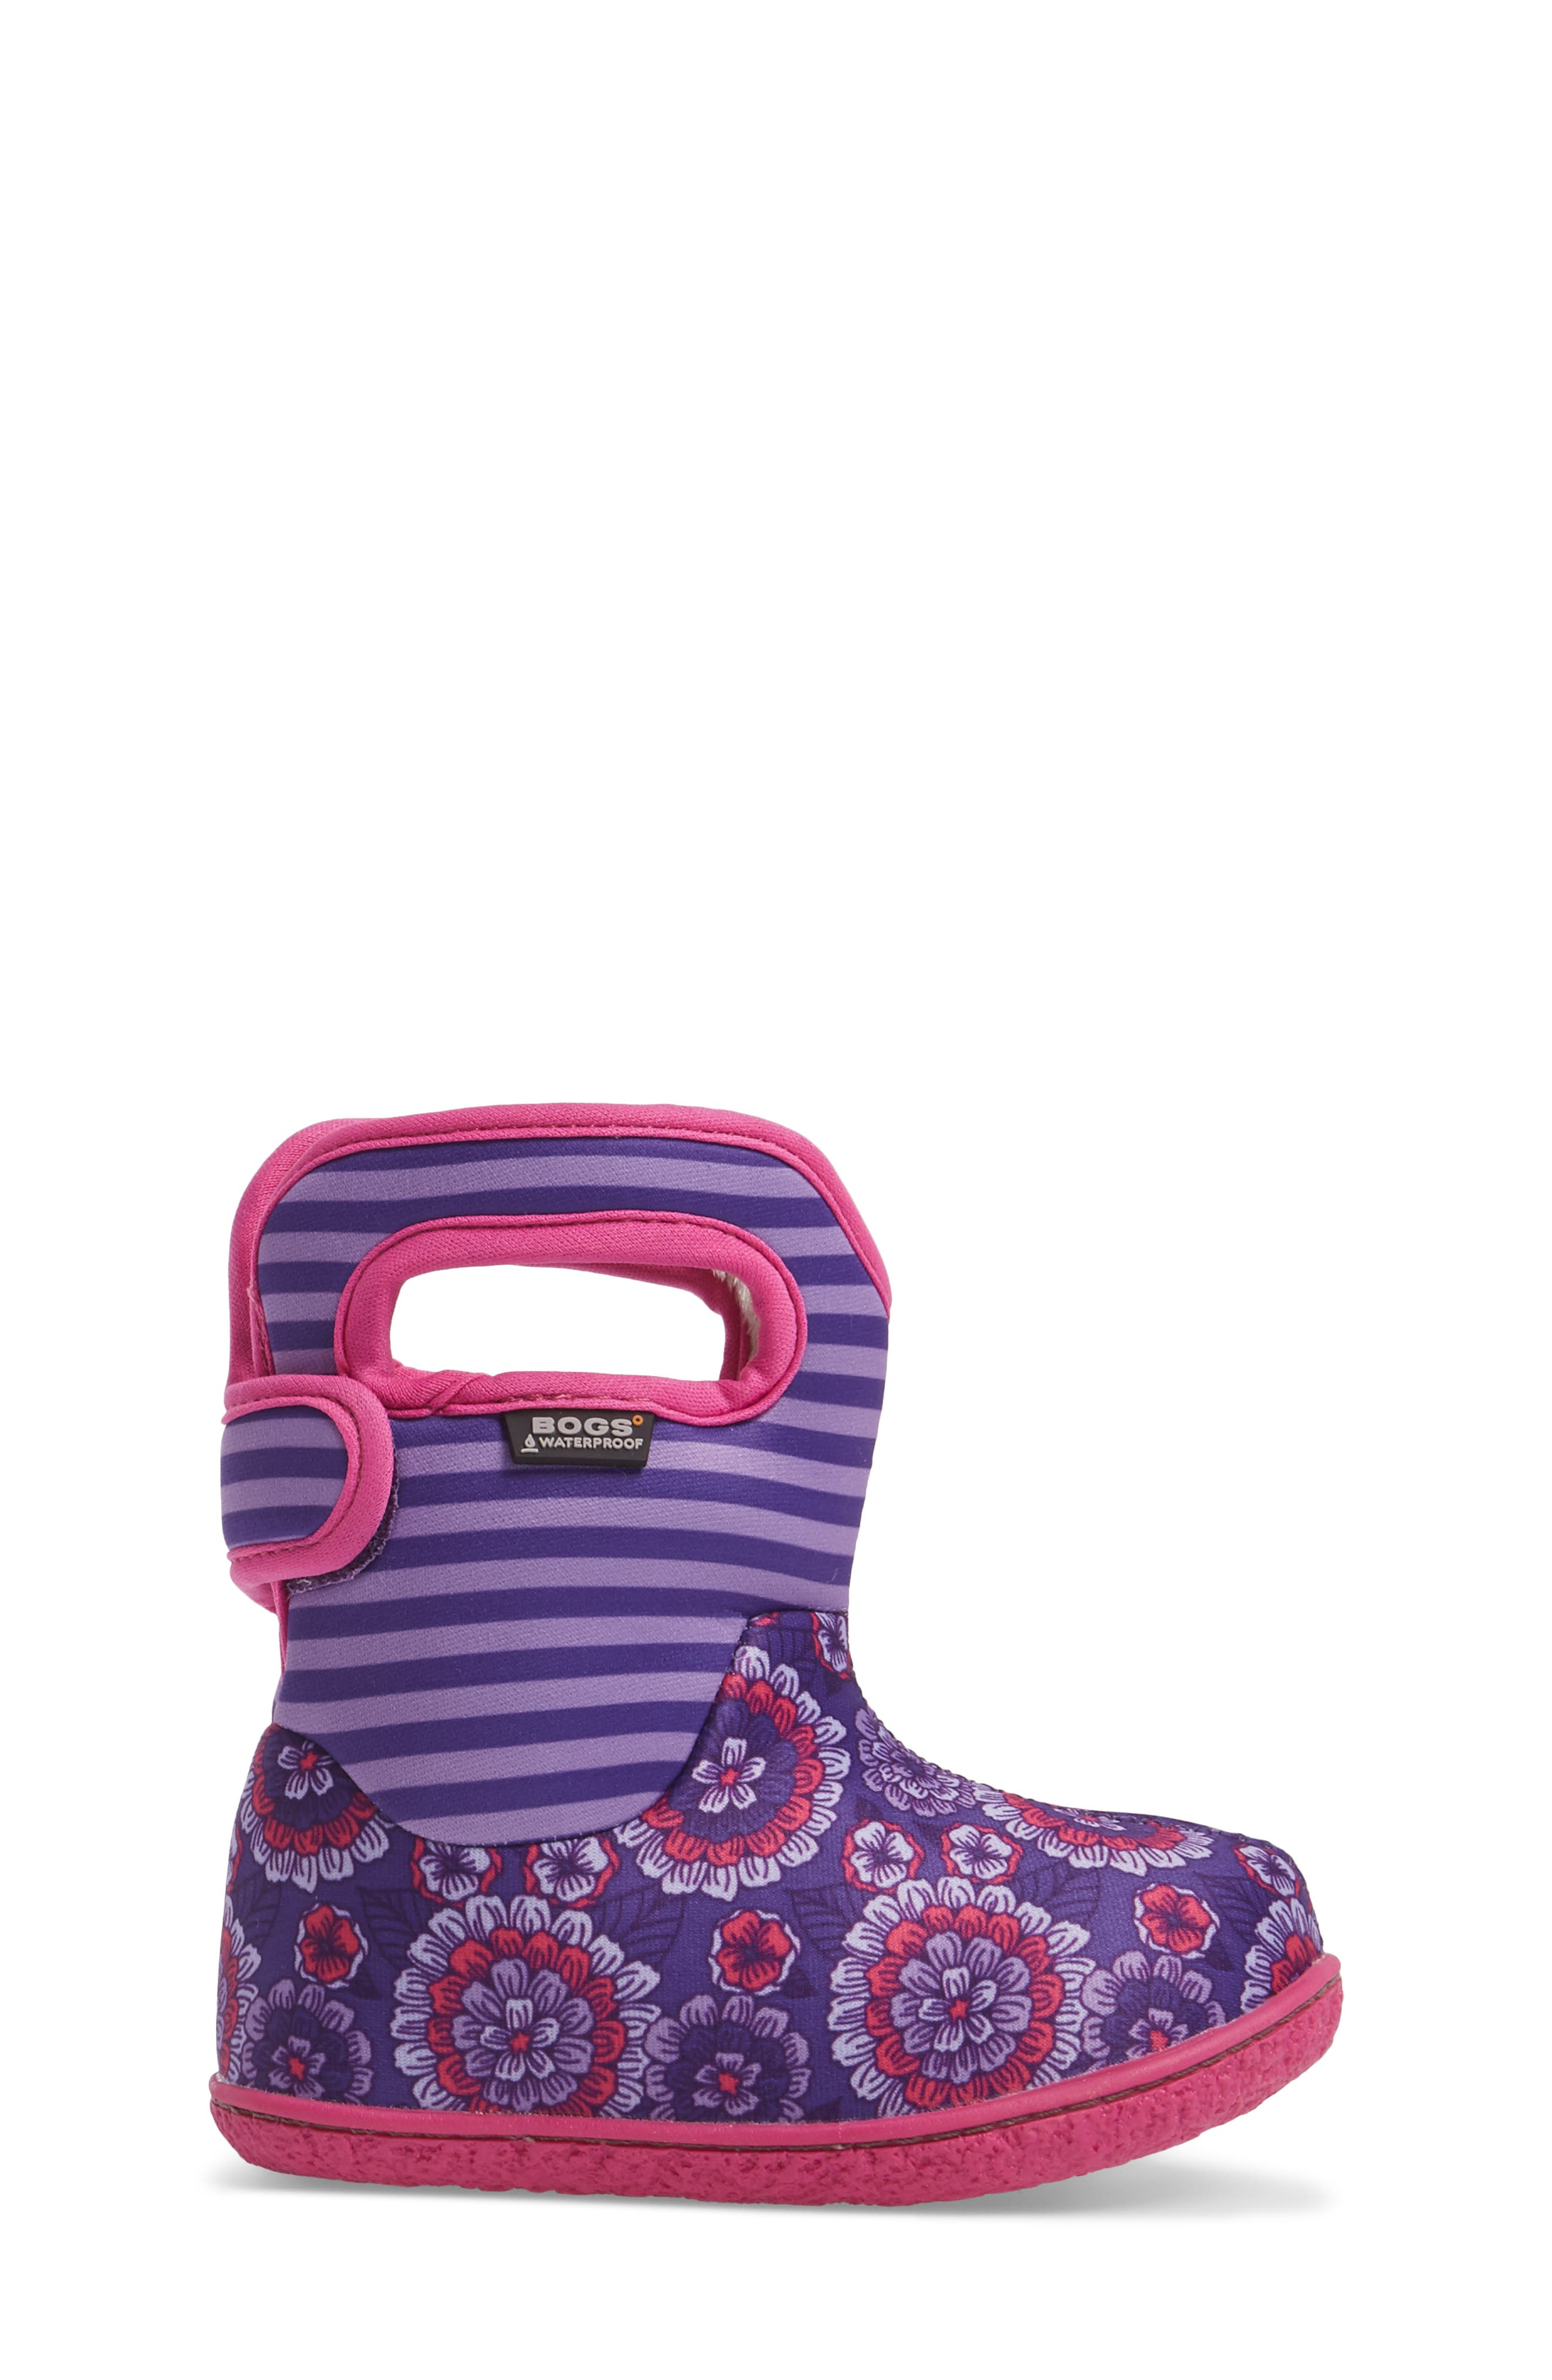 Baby Bogs Classic Pansies Washable Insulated Waterproof Boot,                             Alternate thumbnail 3, color,                             PURPLE MULTI